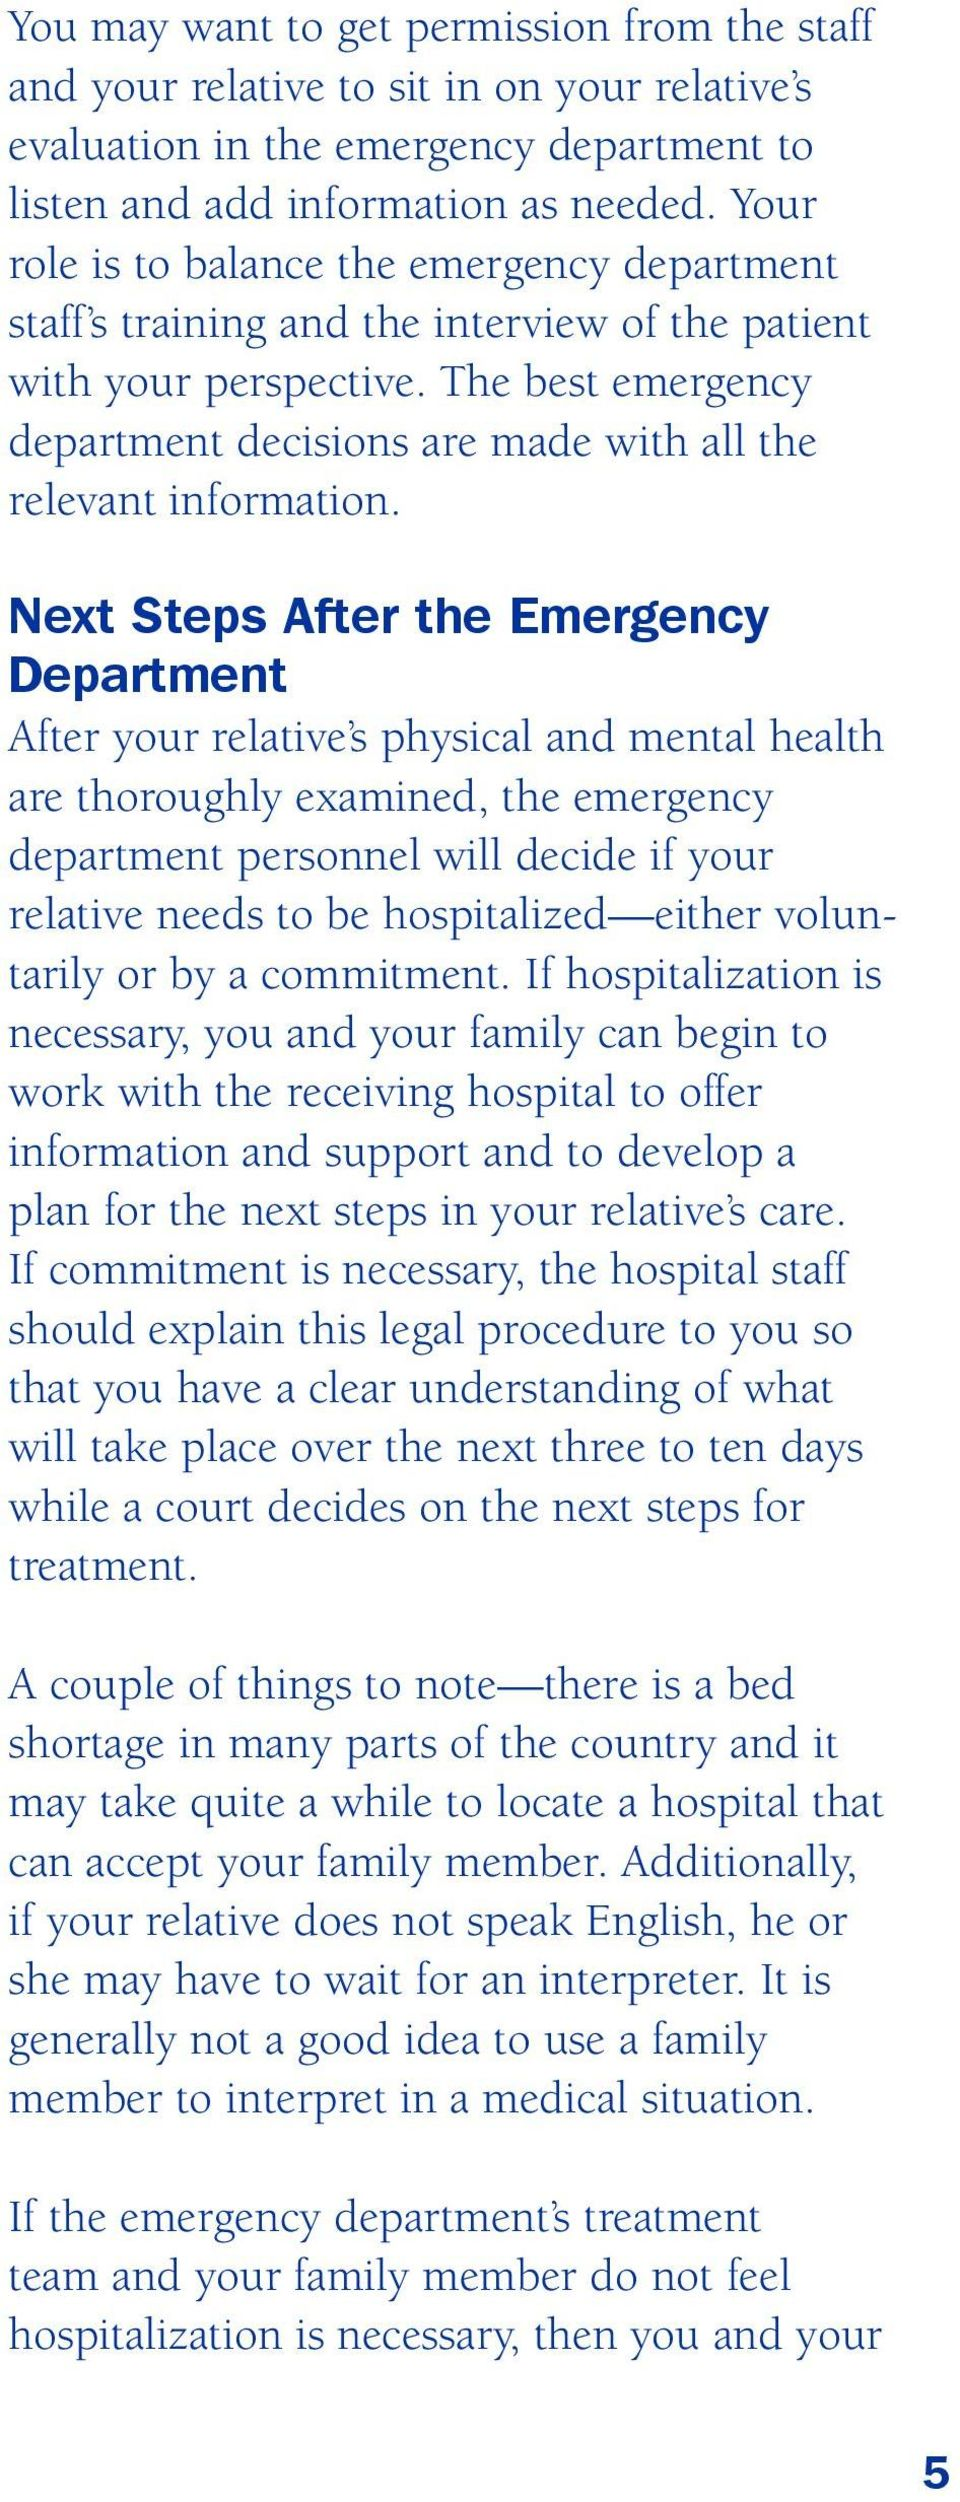 The best emergency department decisions are made with all the relevant information.